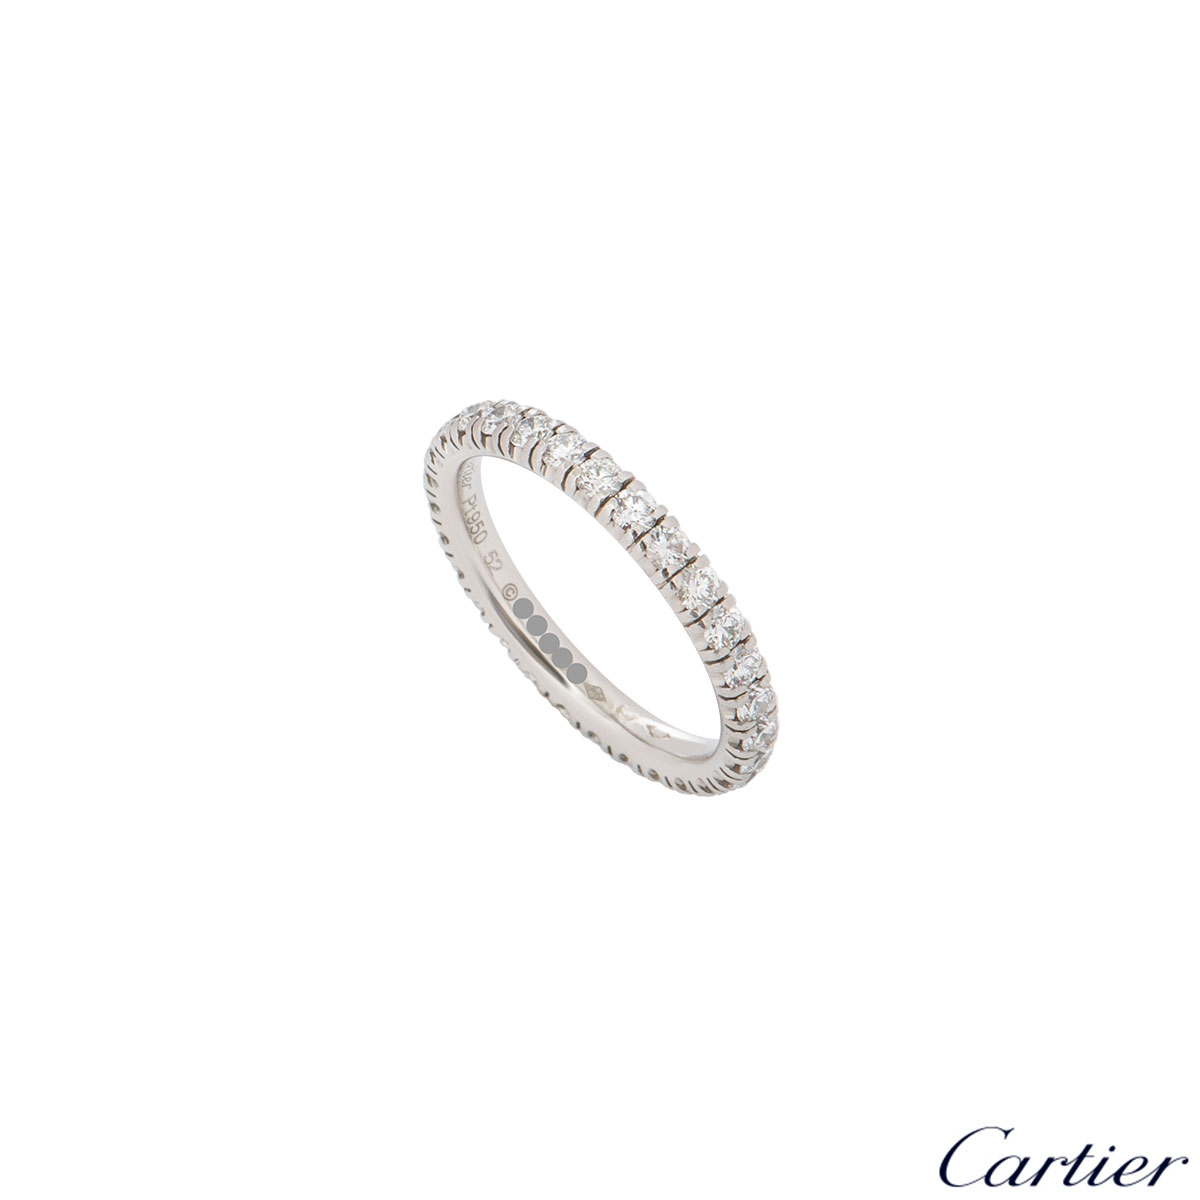 Cartier Platinum Diamond Étincelle De Cartier Ring B4087152